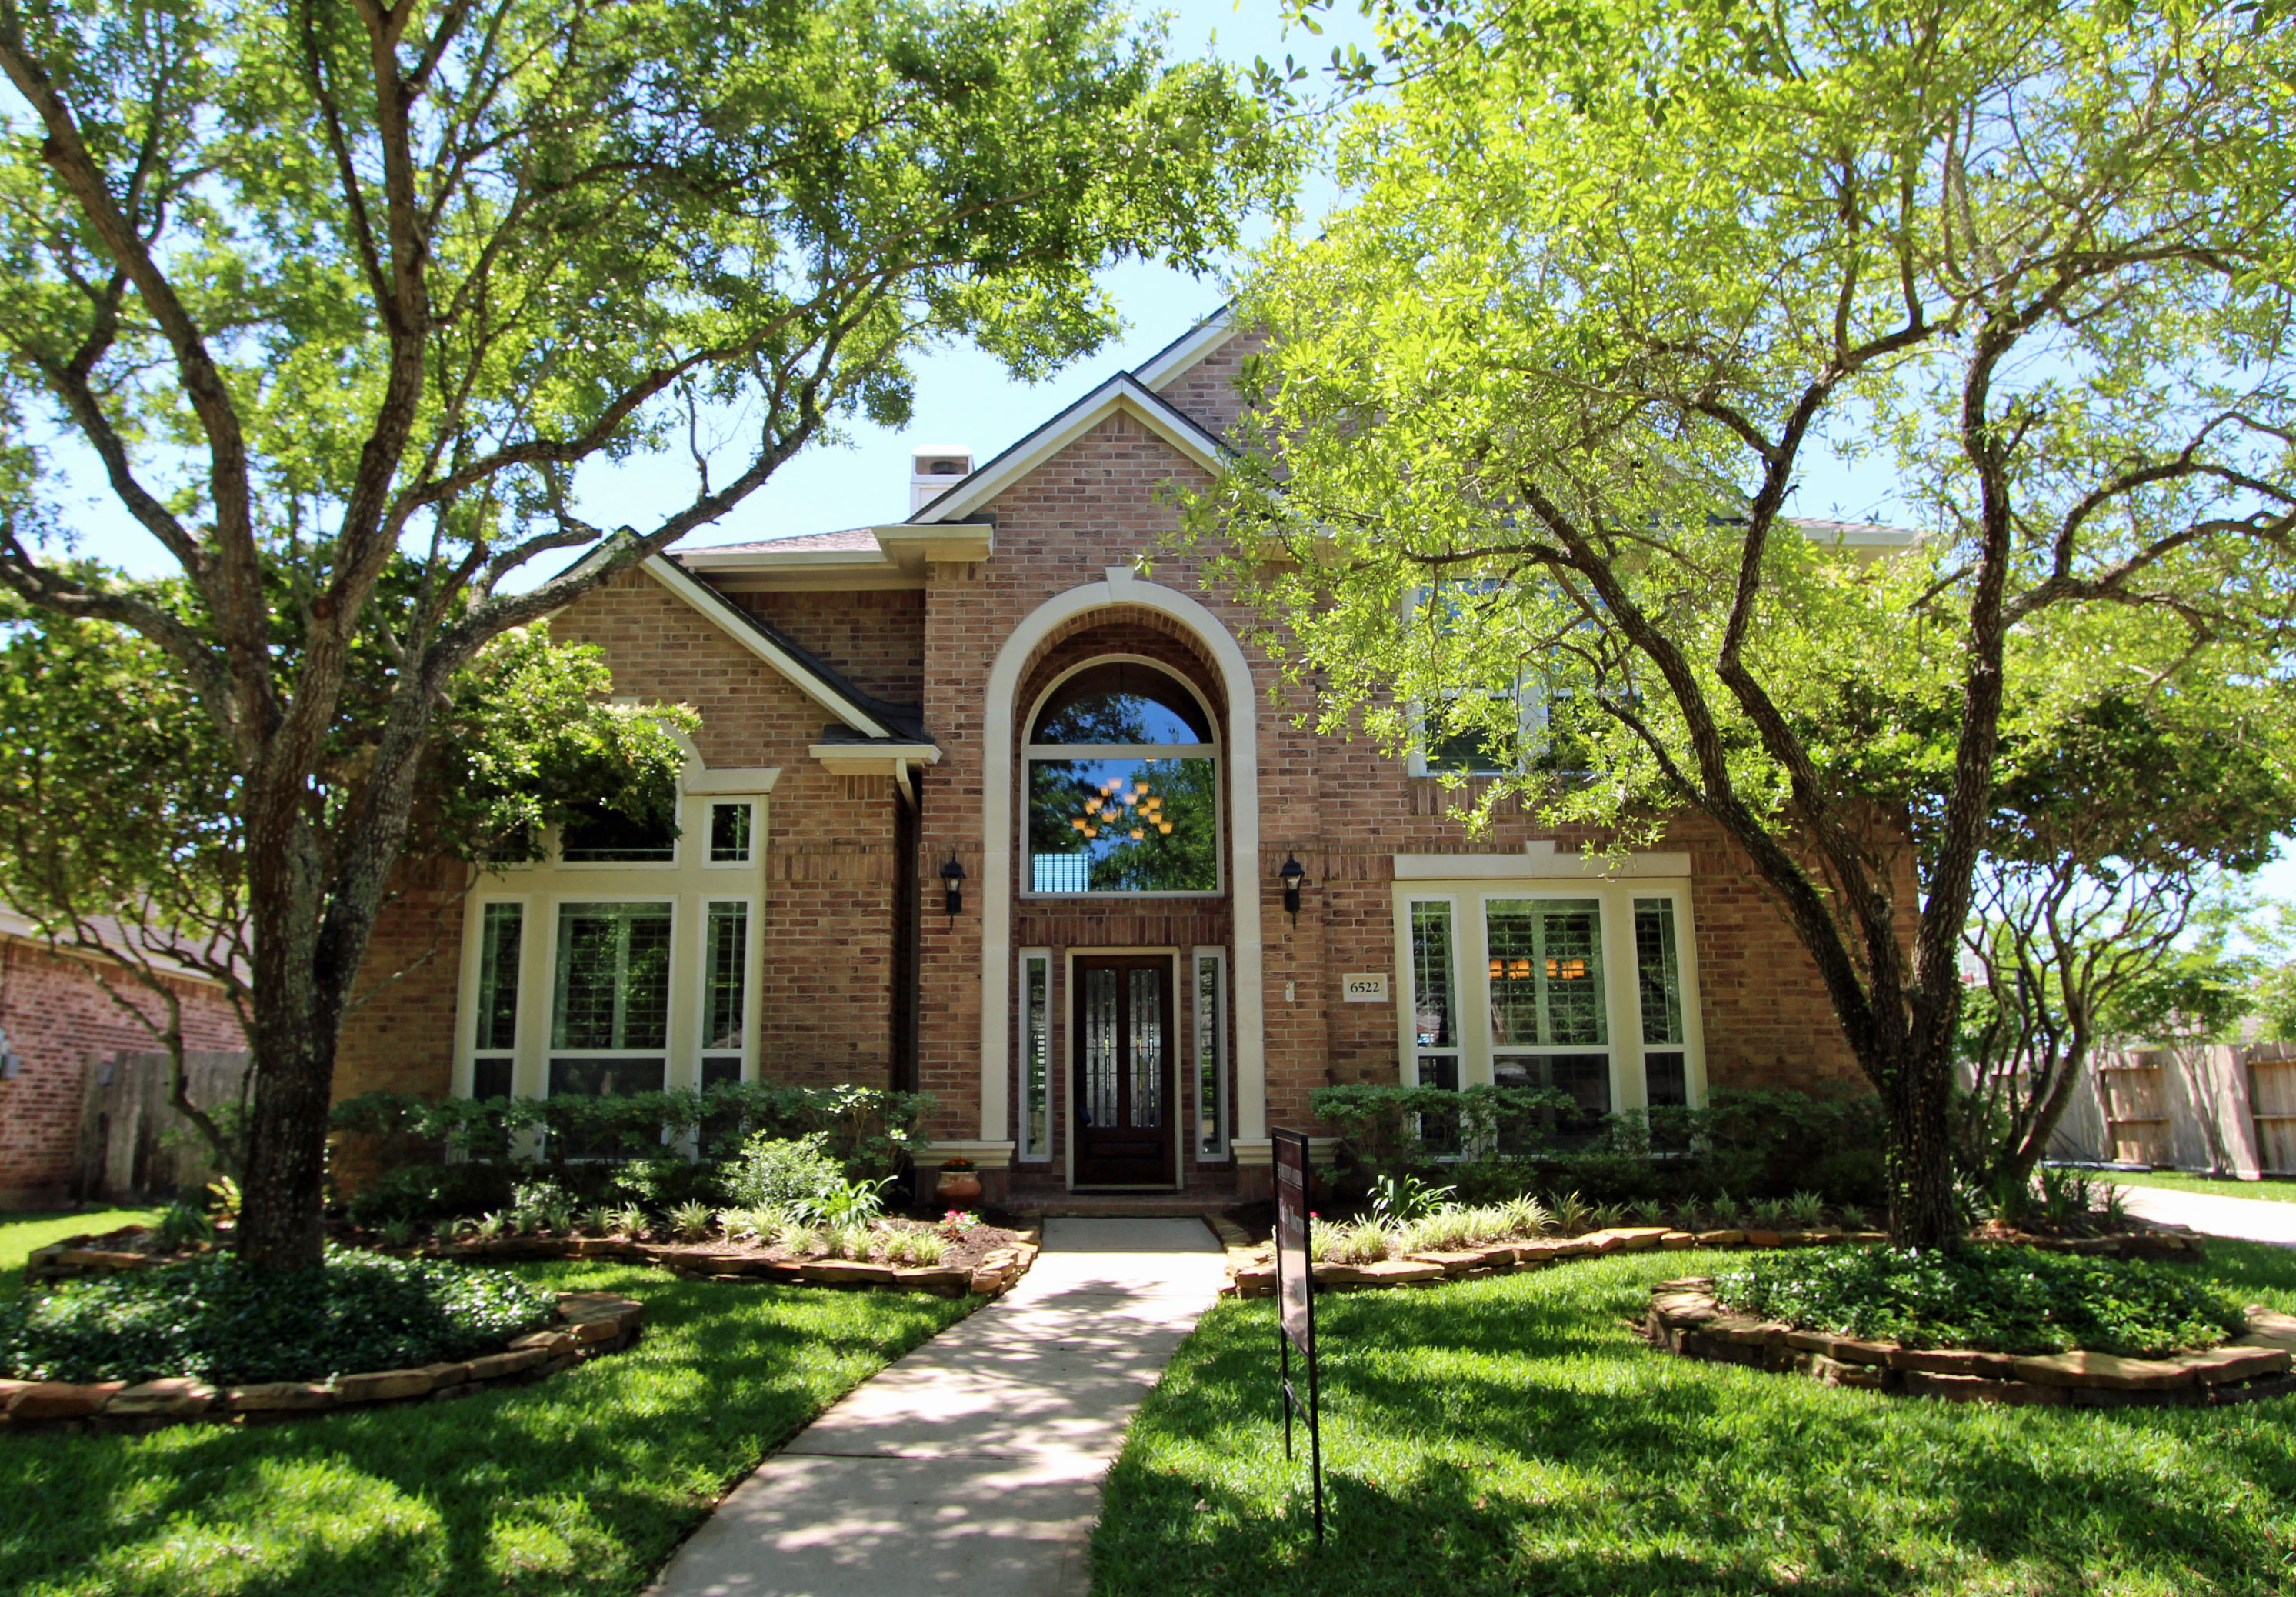 4 Questions to Ask Before Selling a Home - Kathy Morrow